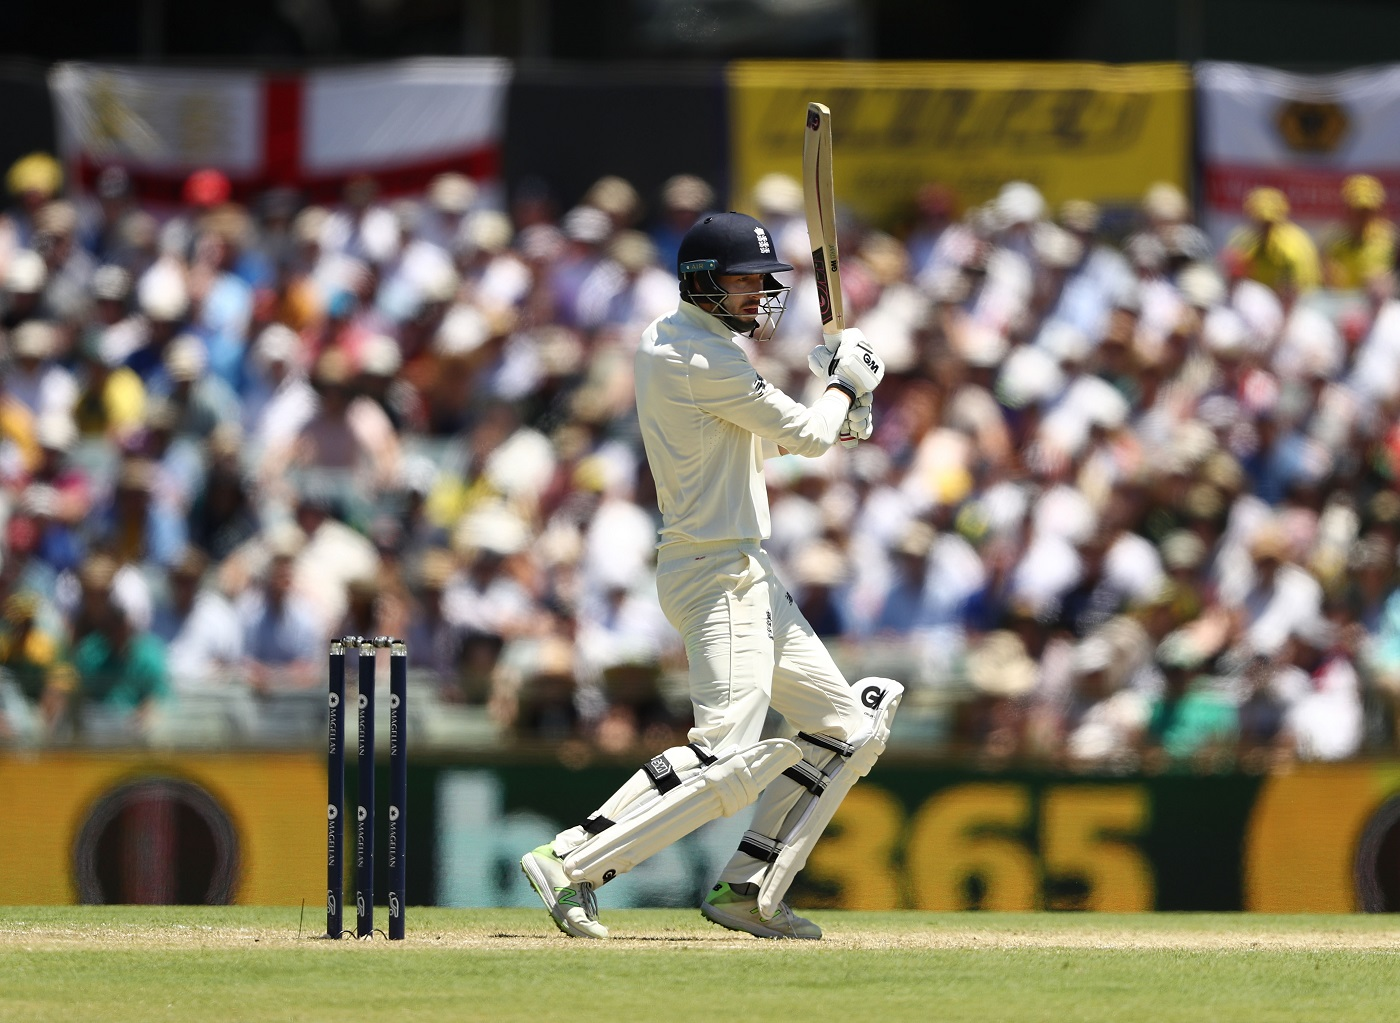 ames Vince of England bats during day one of the Third Test match